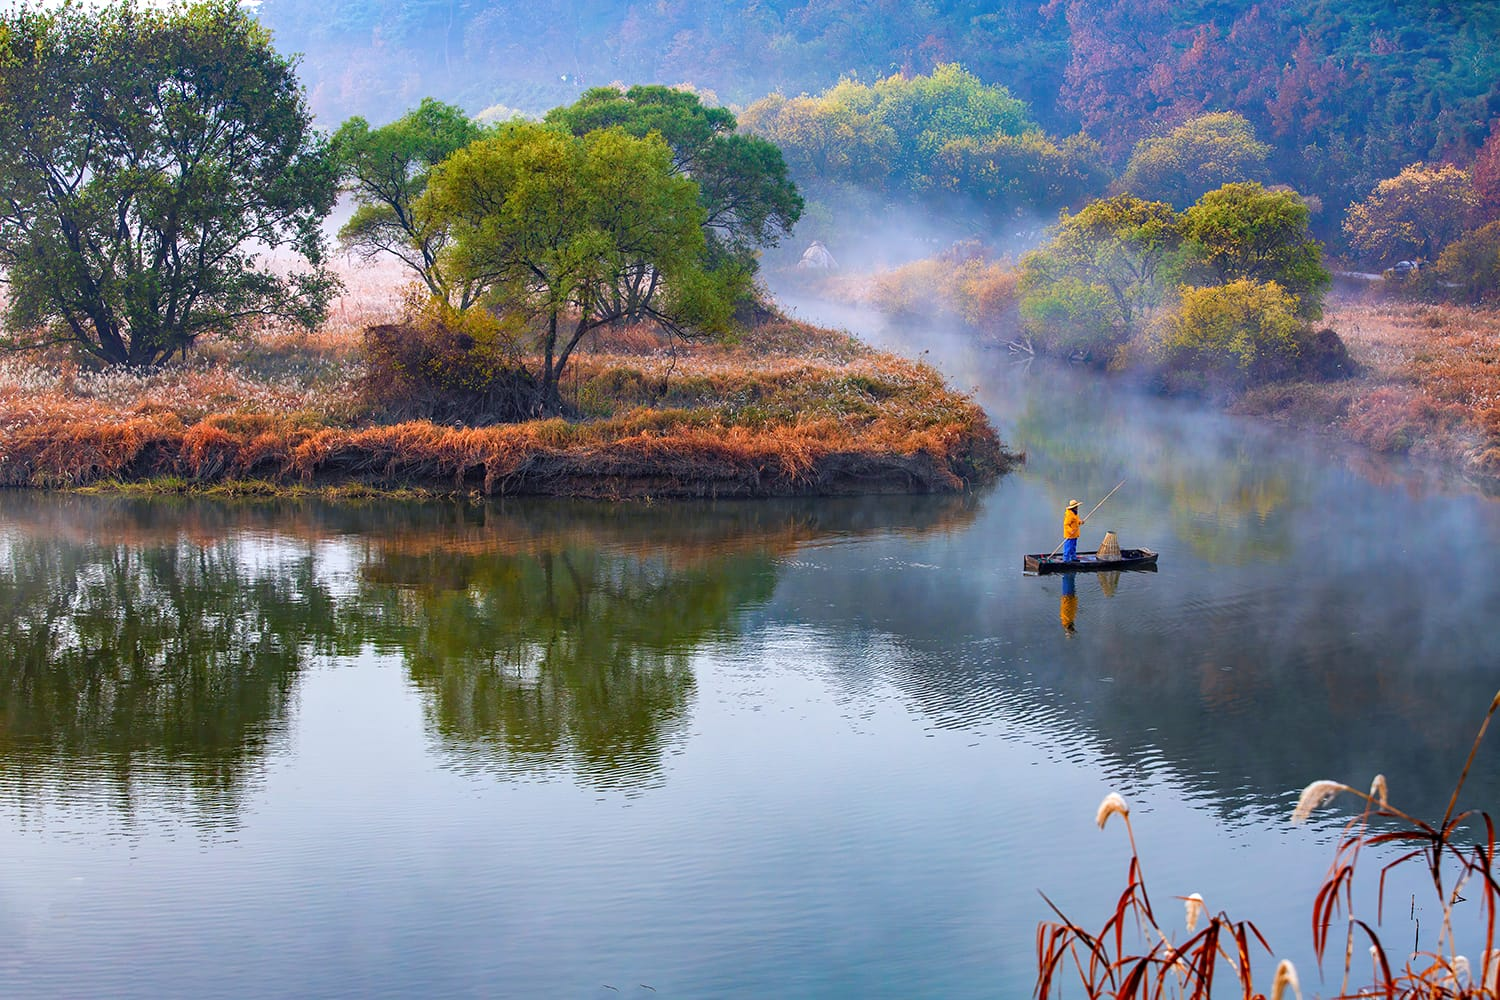 A fisherman is standing on boat with bamboo pole at foggy Upo wetland in the morning